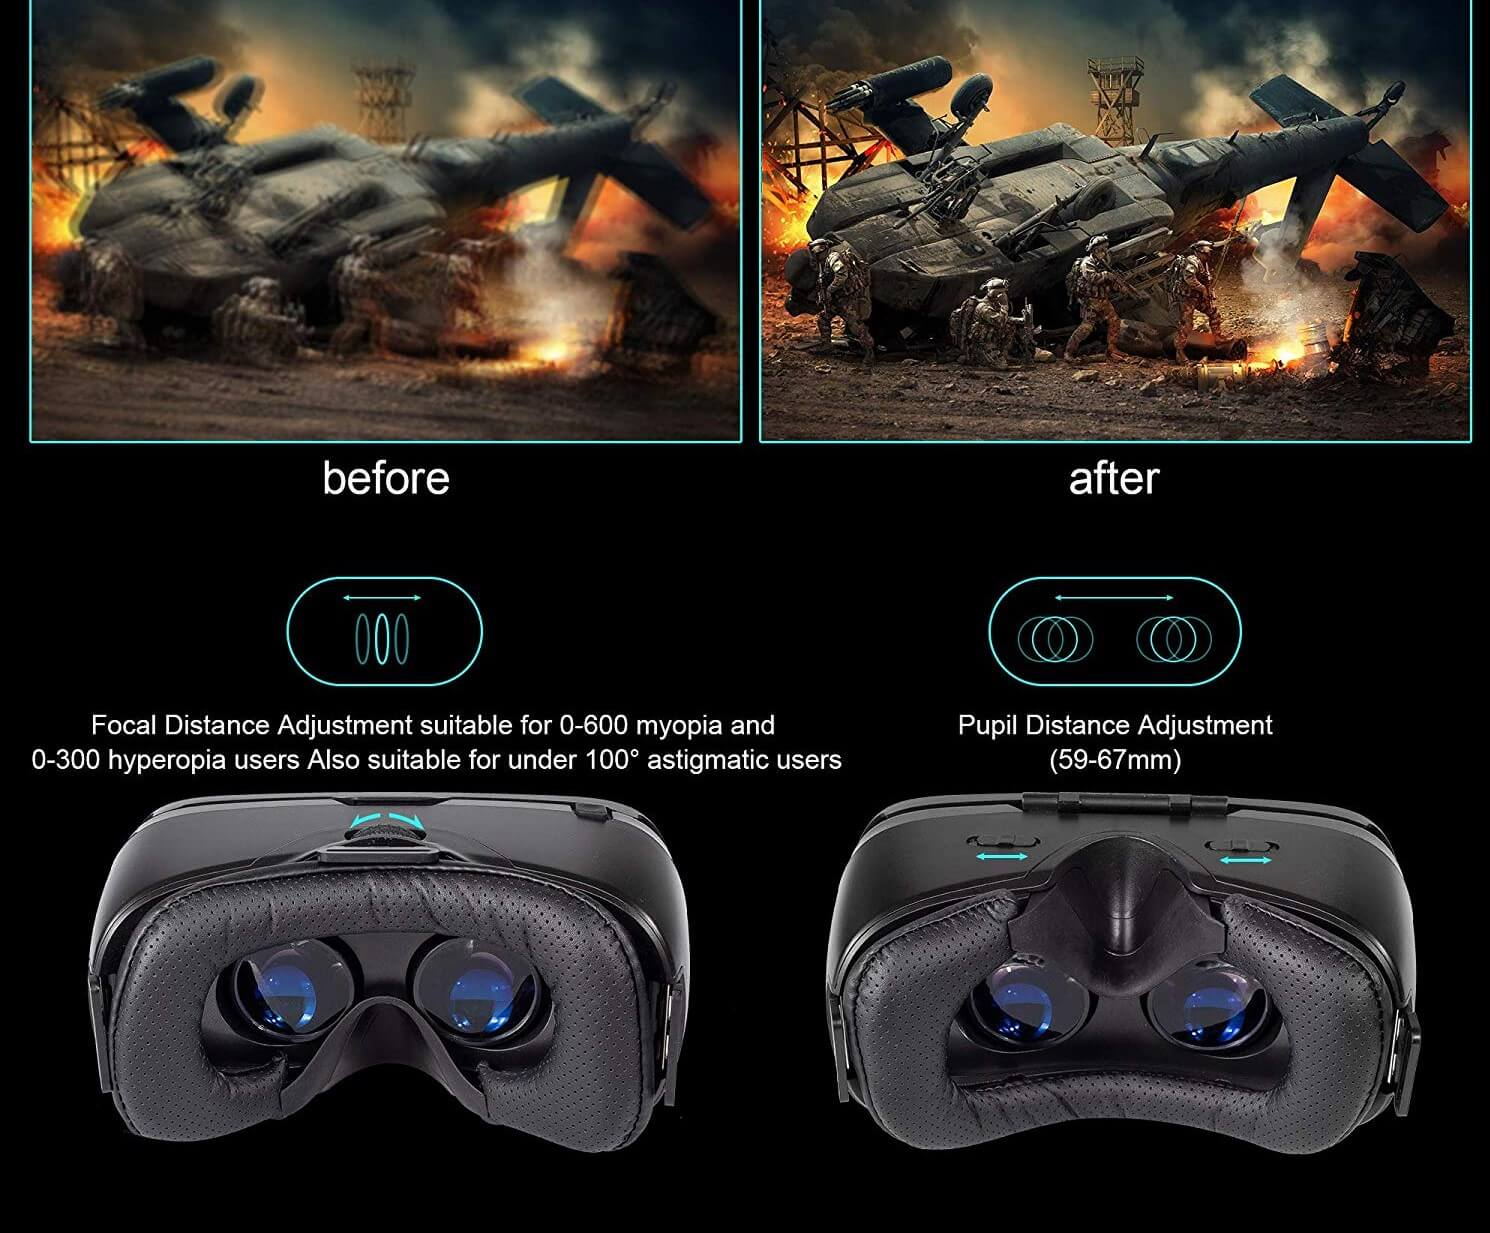 GEARSONE VR Headset Full Review With Pros And Cons